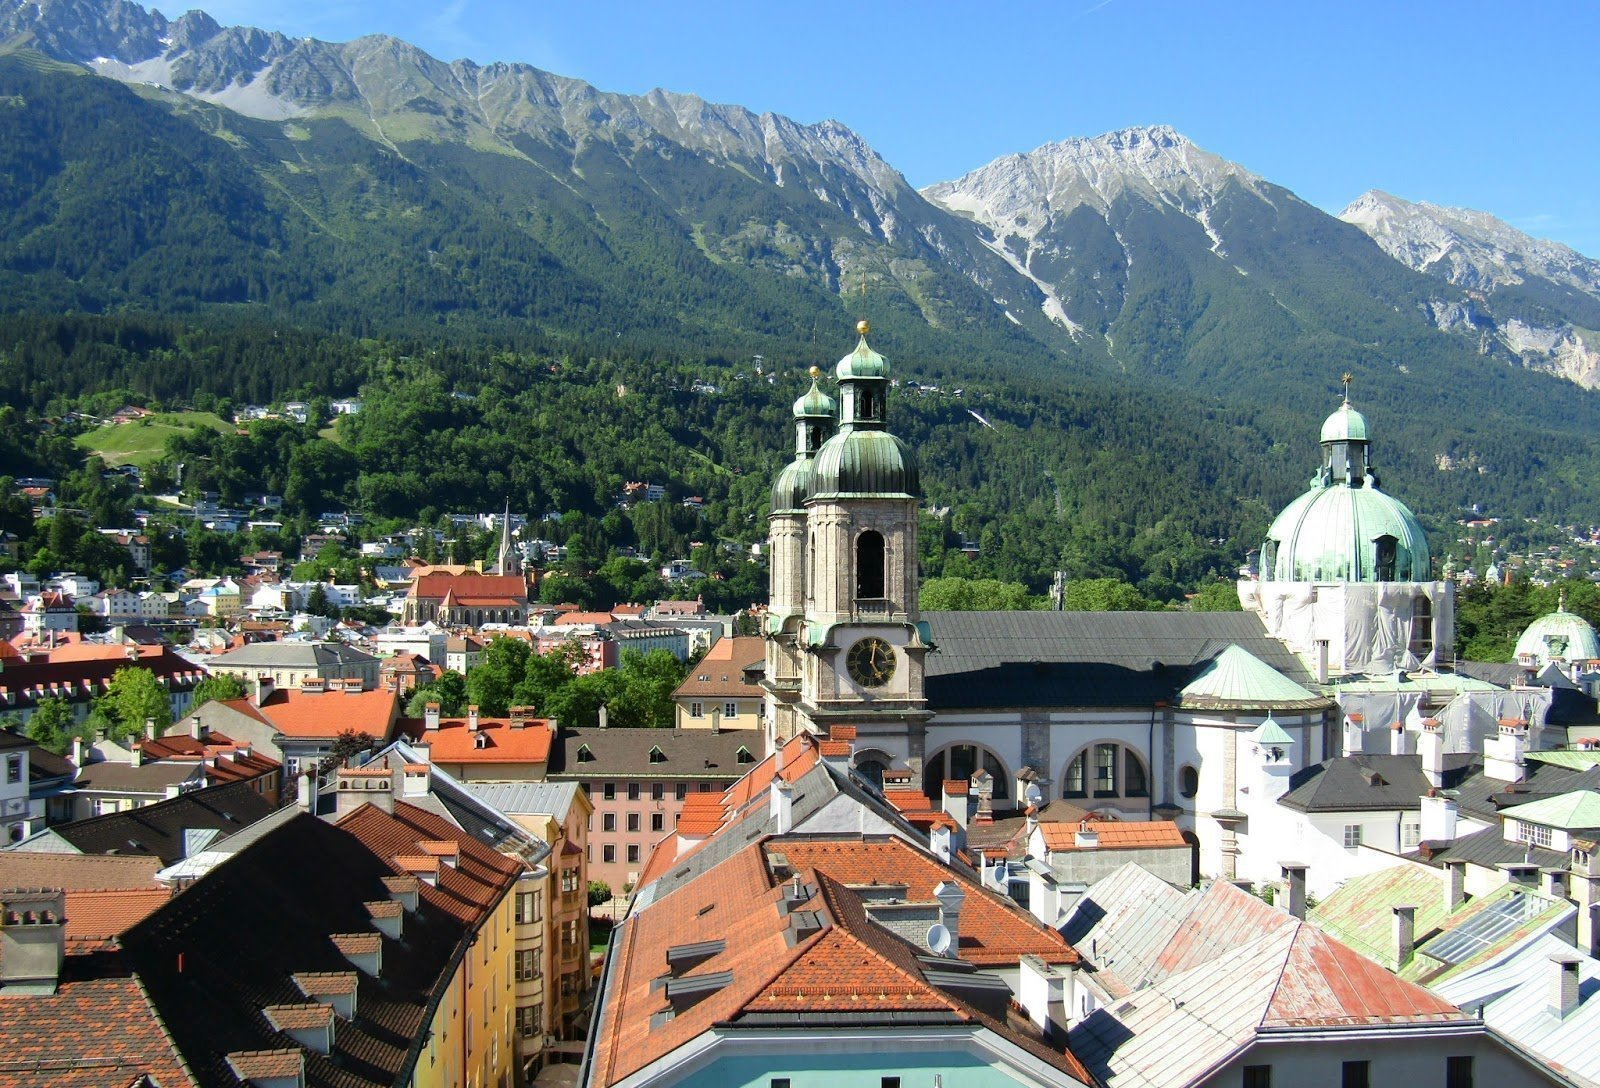 IMG 2030 COSA VEDERE A INNSBRUCK